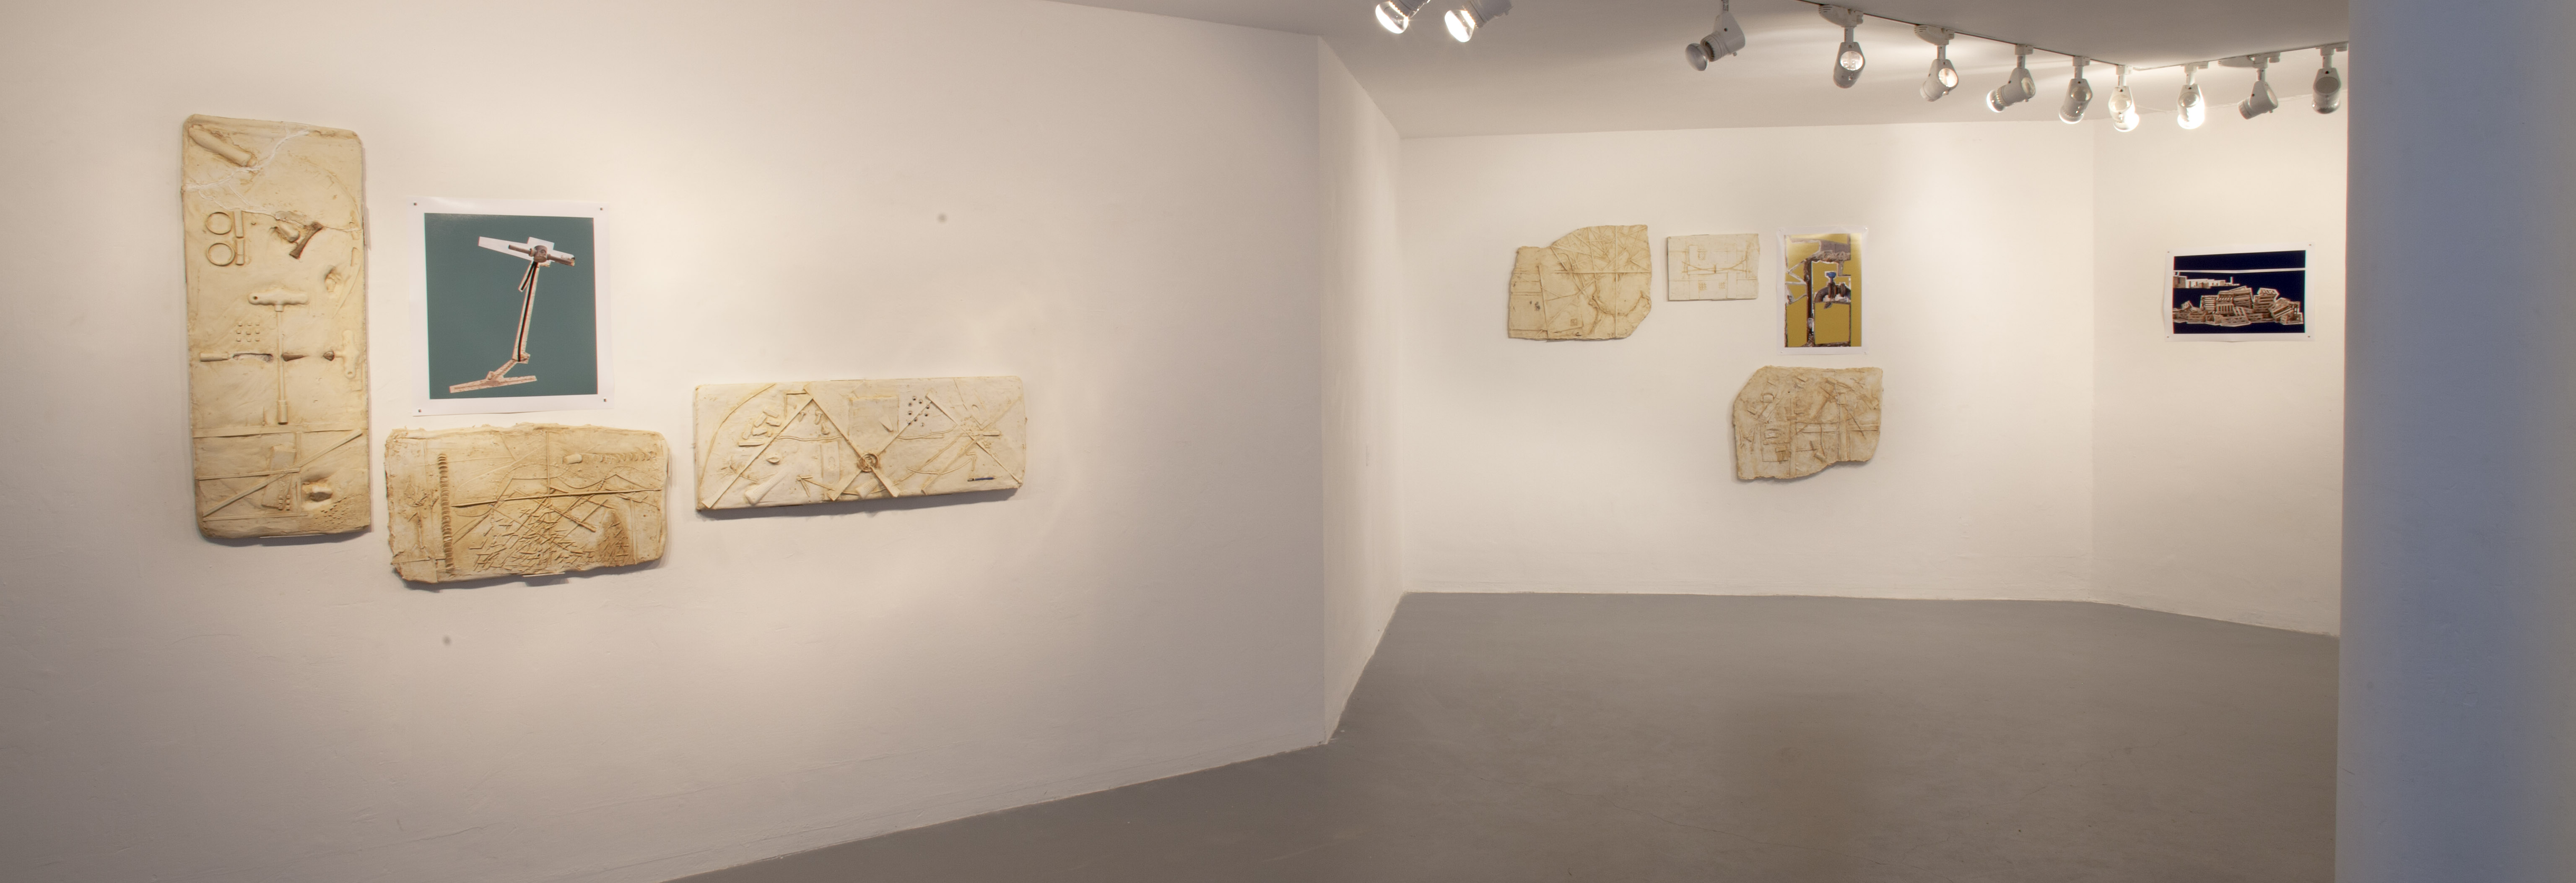 Surfaces, 2015, a view of the exhibition